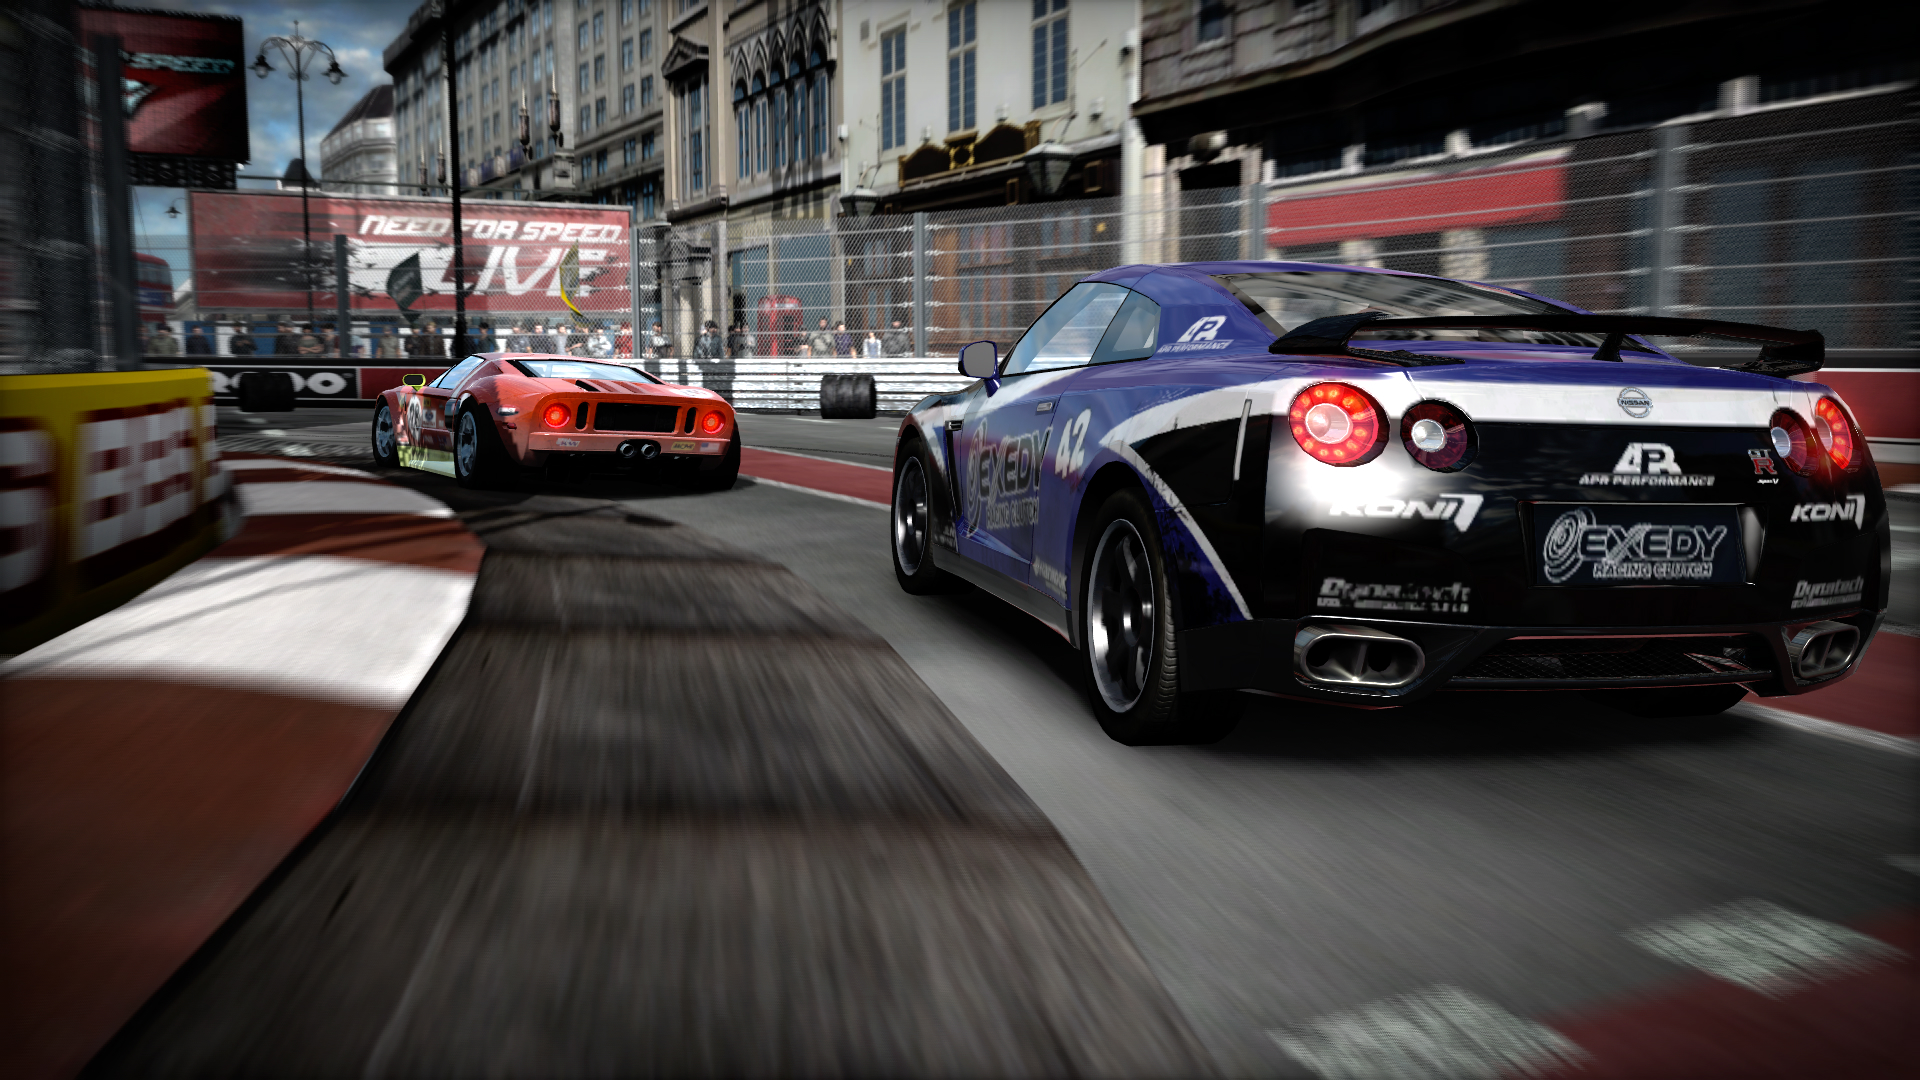 Need For Speed Shift features detailed cars, great tracks, and a focus on realistic racing